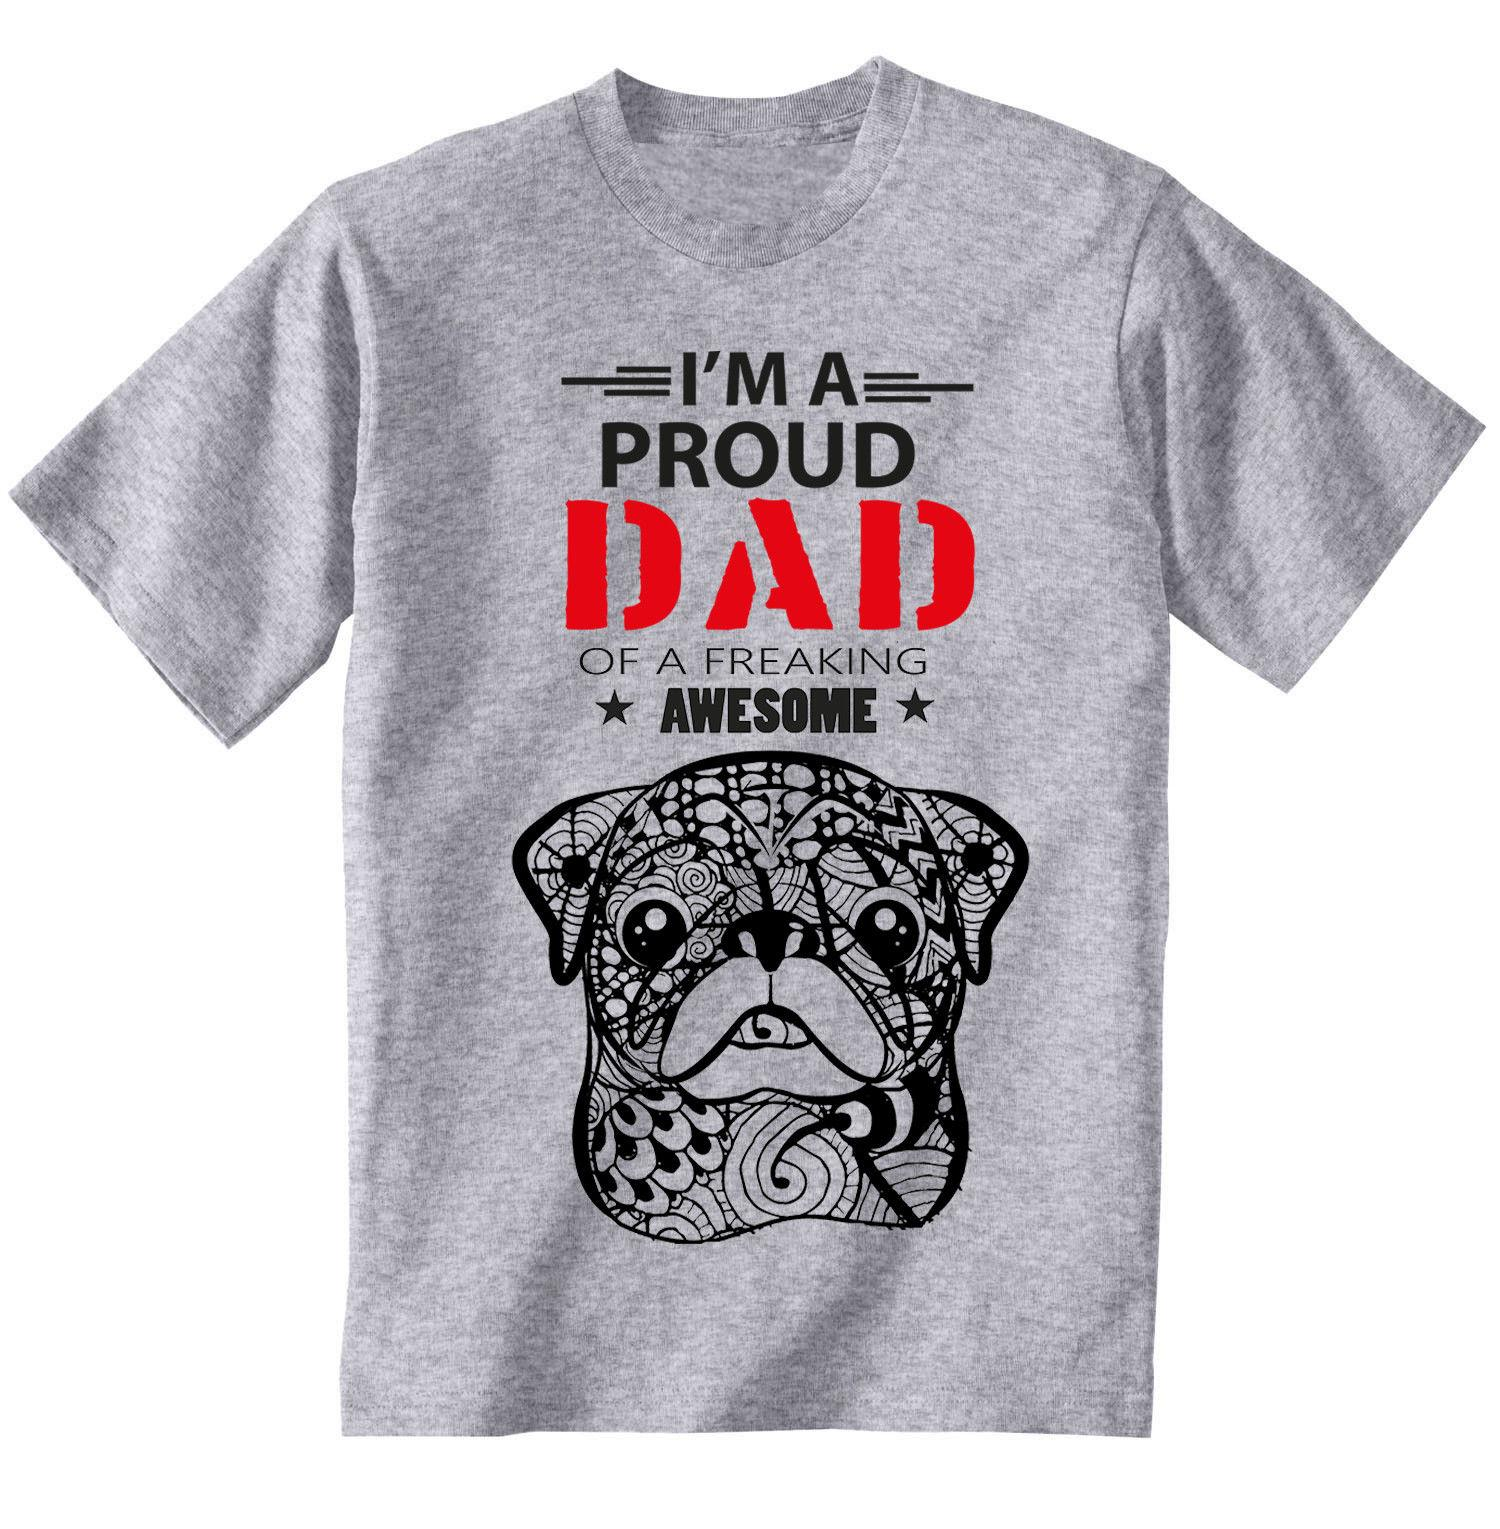 f746e307 PUG IM A PROUD DAD NEW COTTON GREY TSHIRT Short Sleeve Plus Size T Shirt  Colour Jersey Print T Shirt Long Sleeve T Shirts Vintage T Shirts From  Asisccup, ...